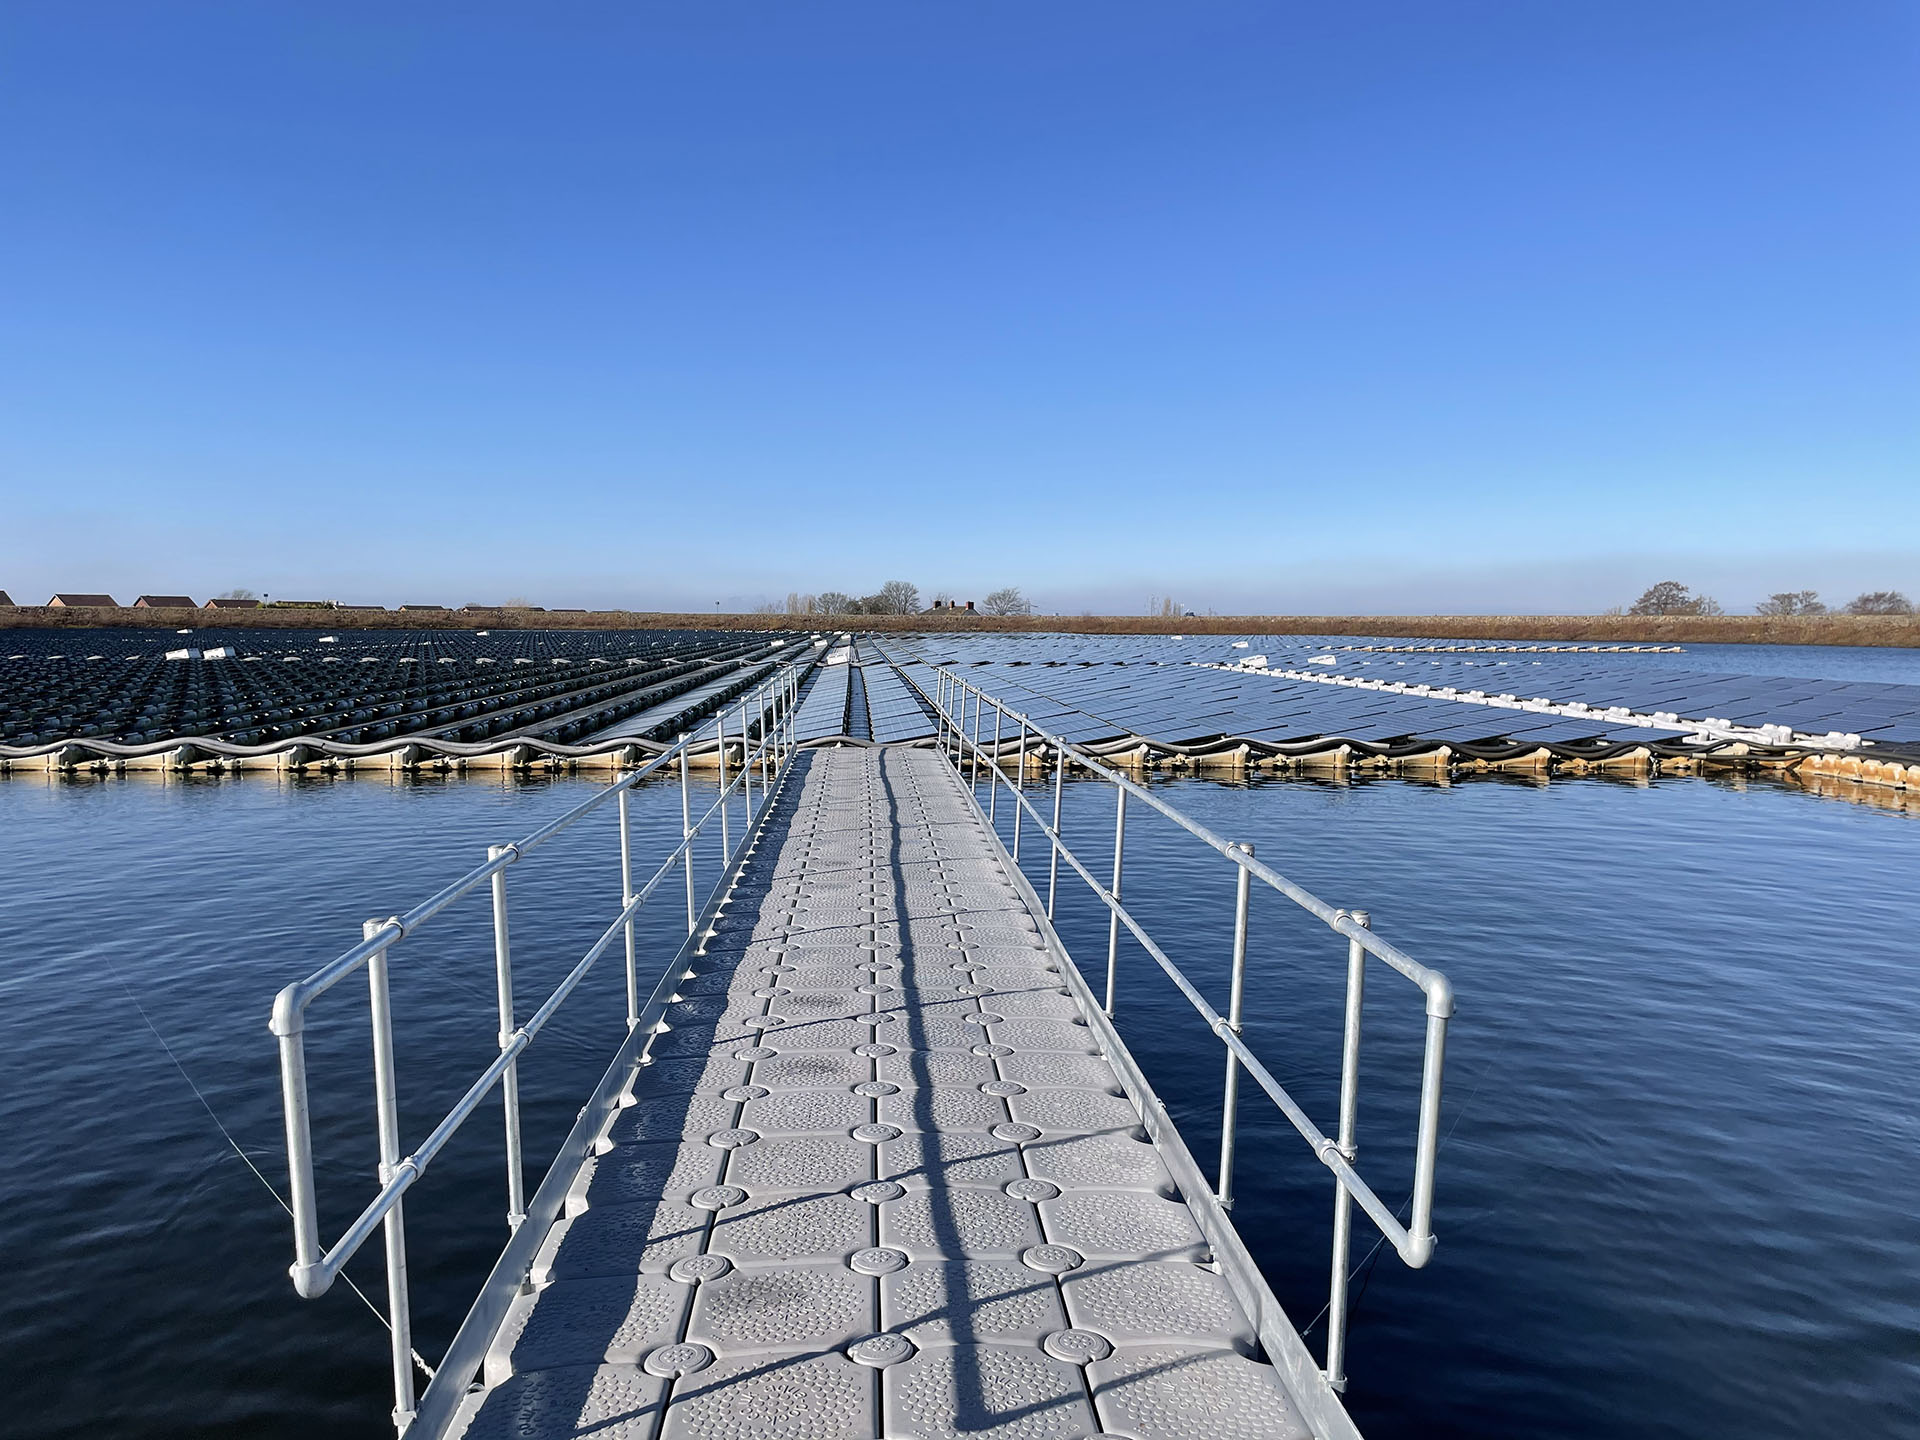 floating walkway out to floating solar panels on reservoir